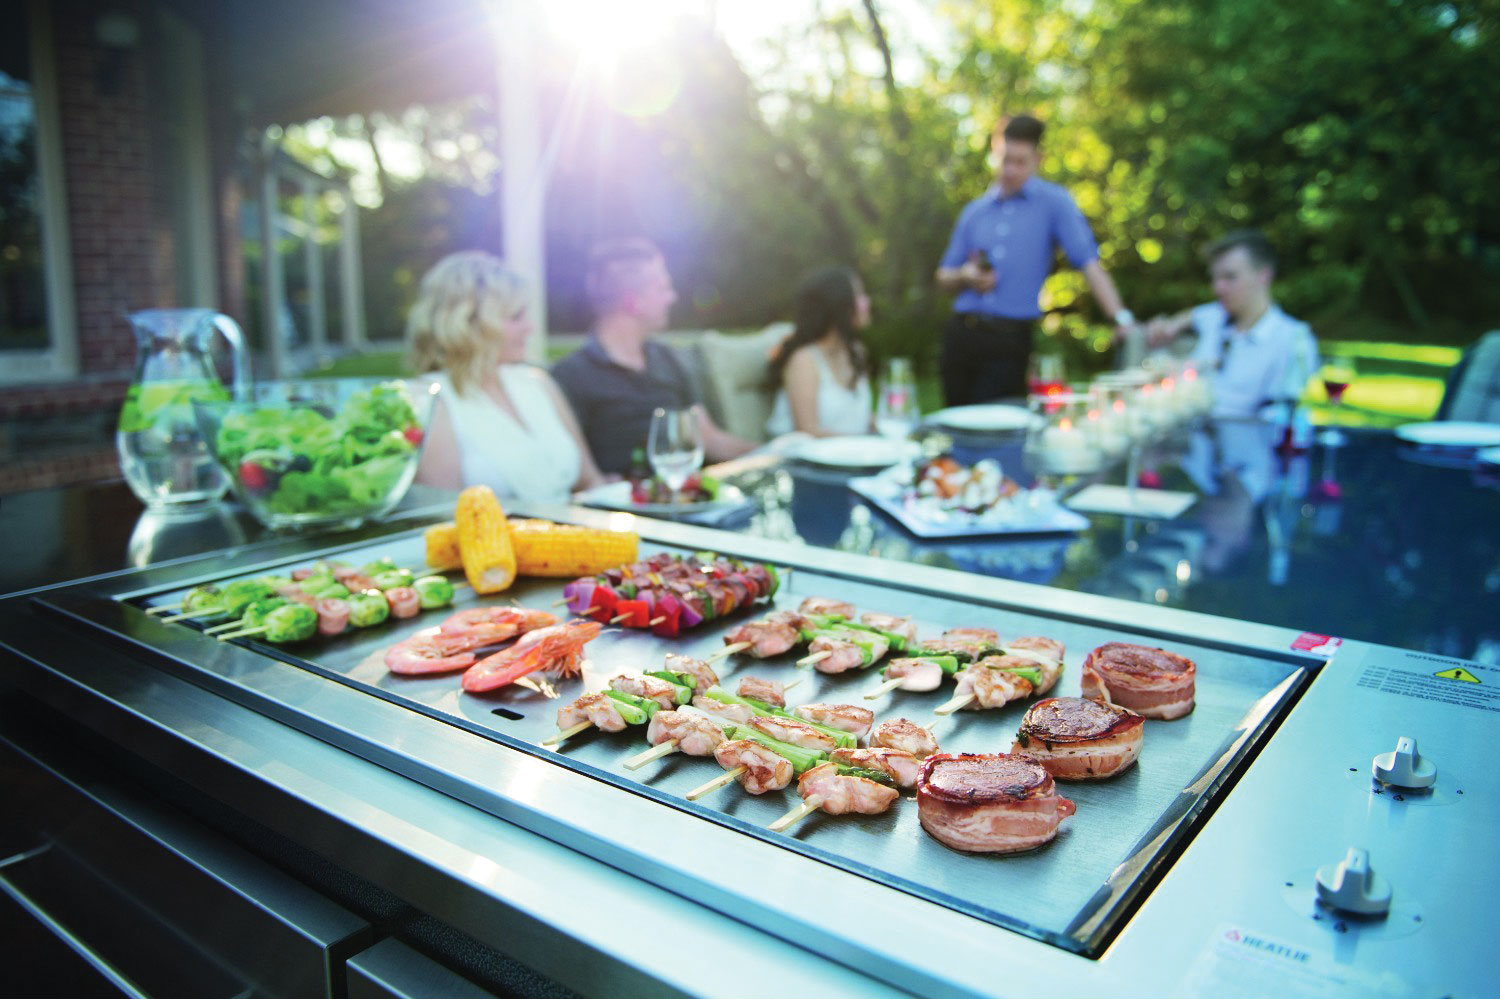 Get the party started: 7 tips to host delicious dinner parties without the hassle